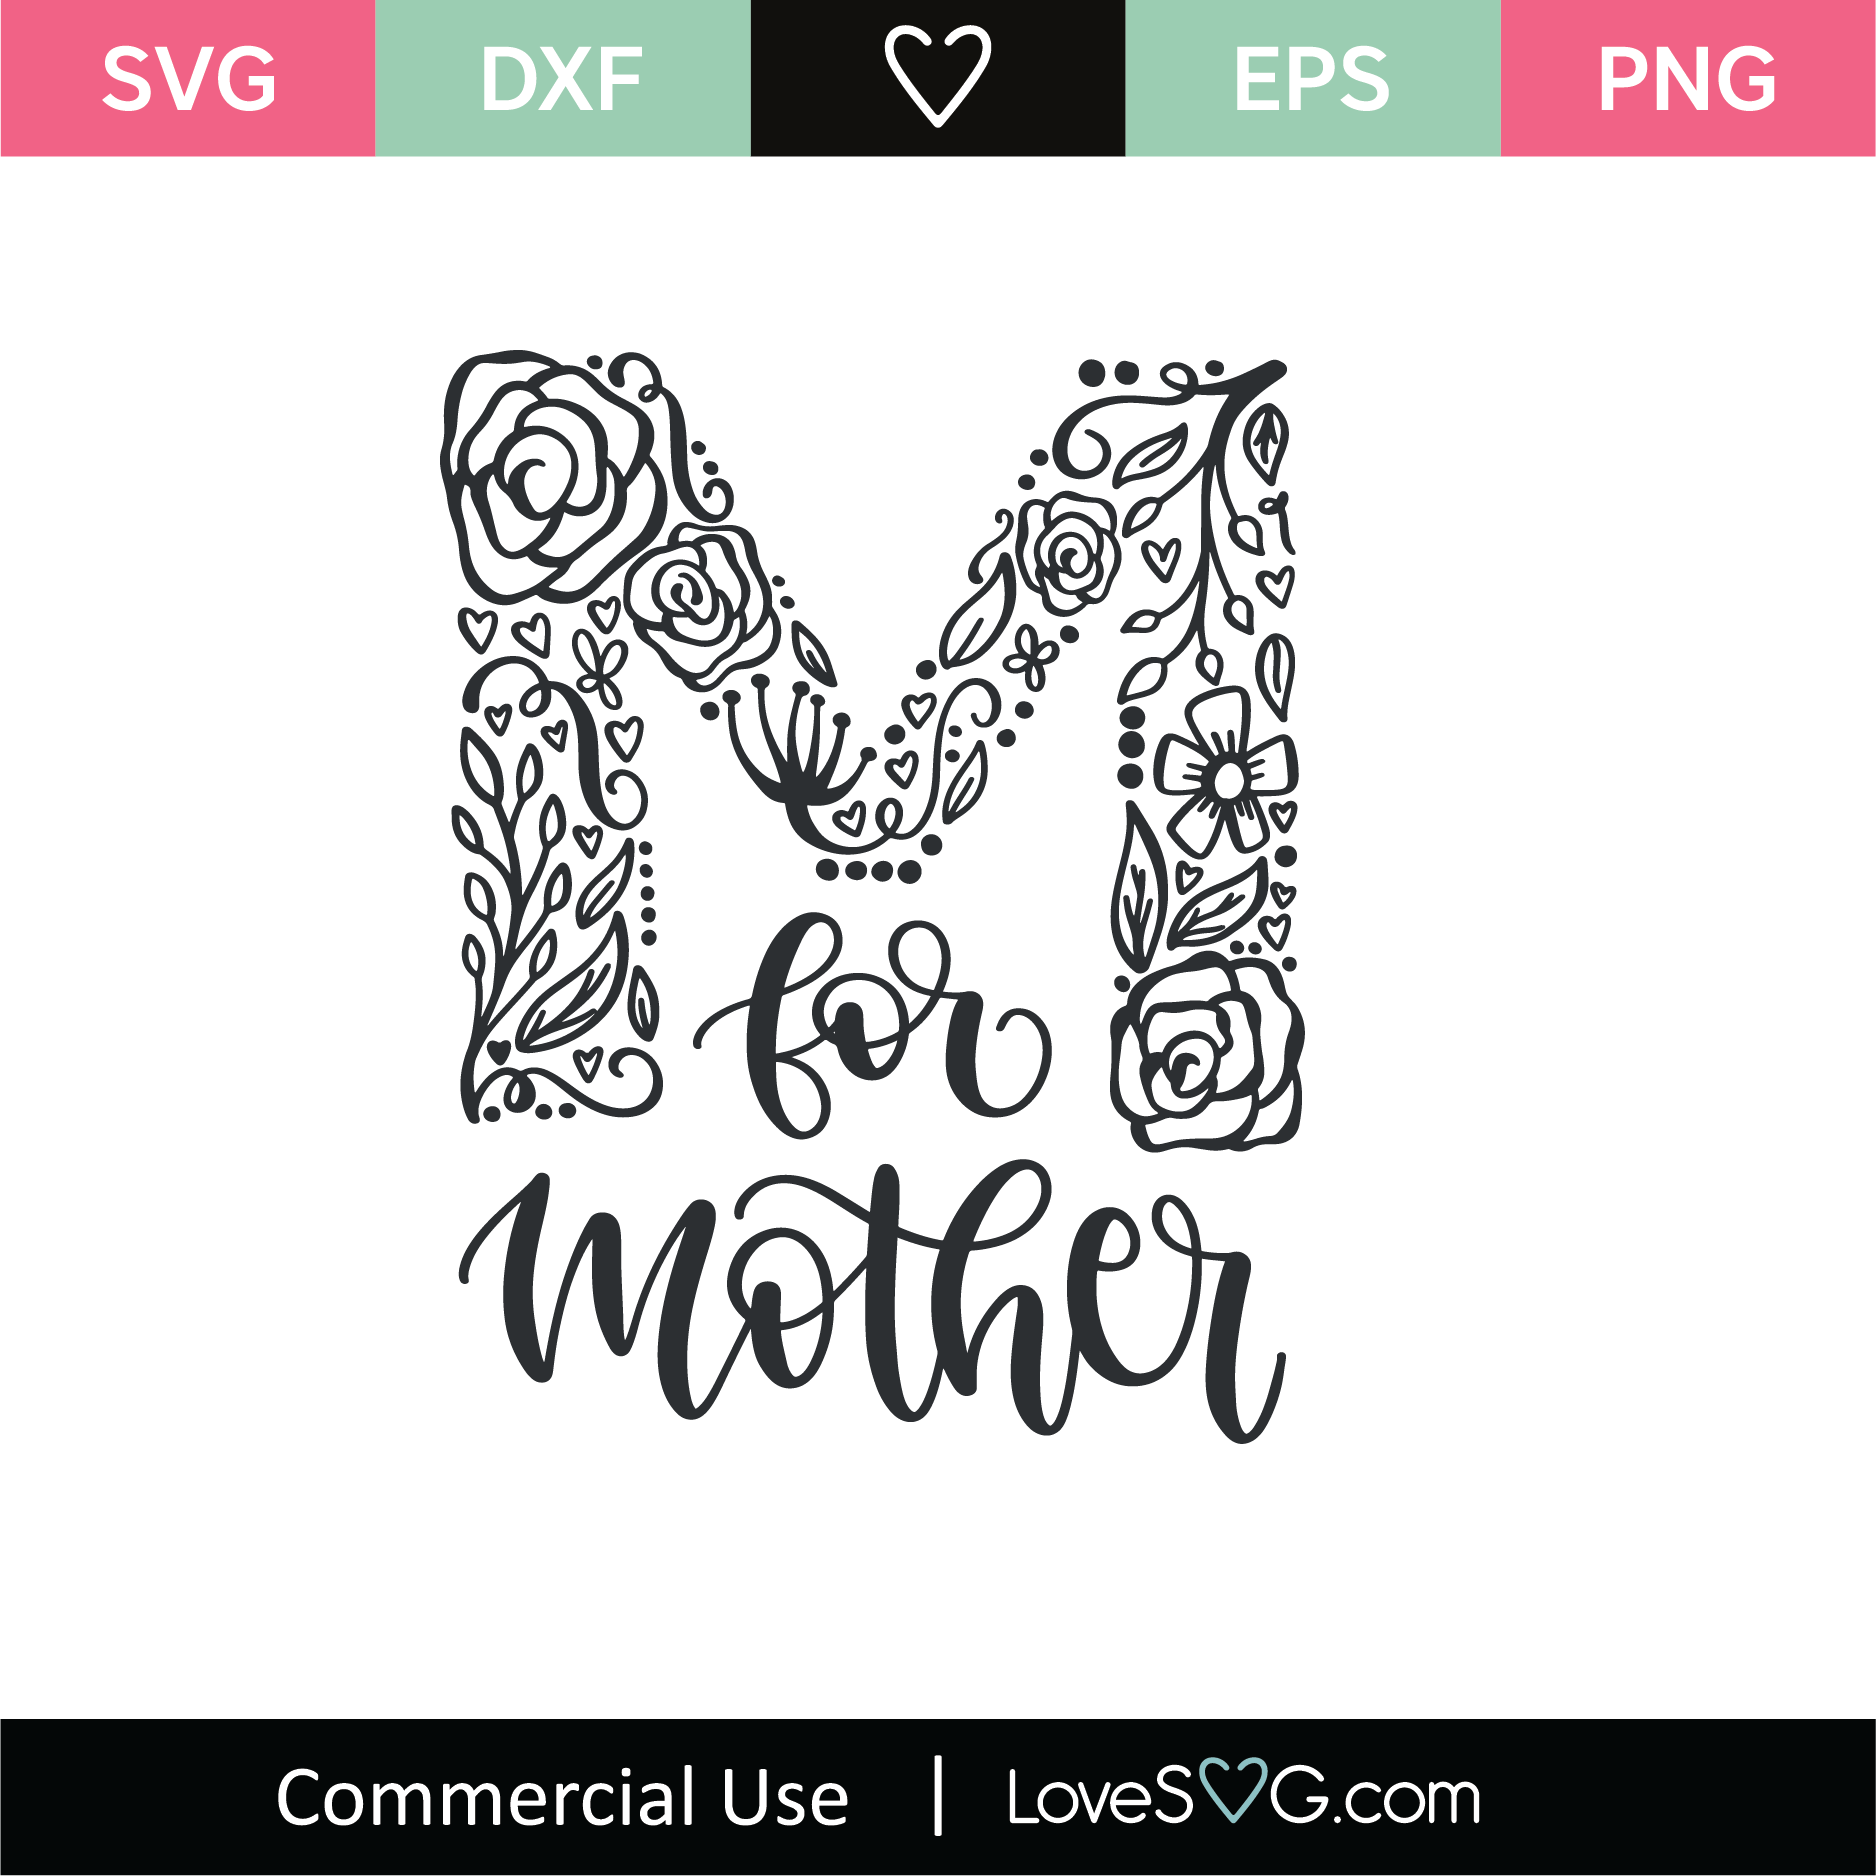 View My First Mother's Day Svg, Dxf, Eps, Png Design Image